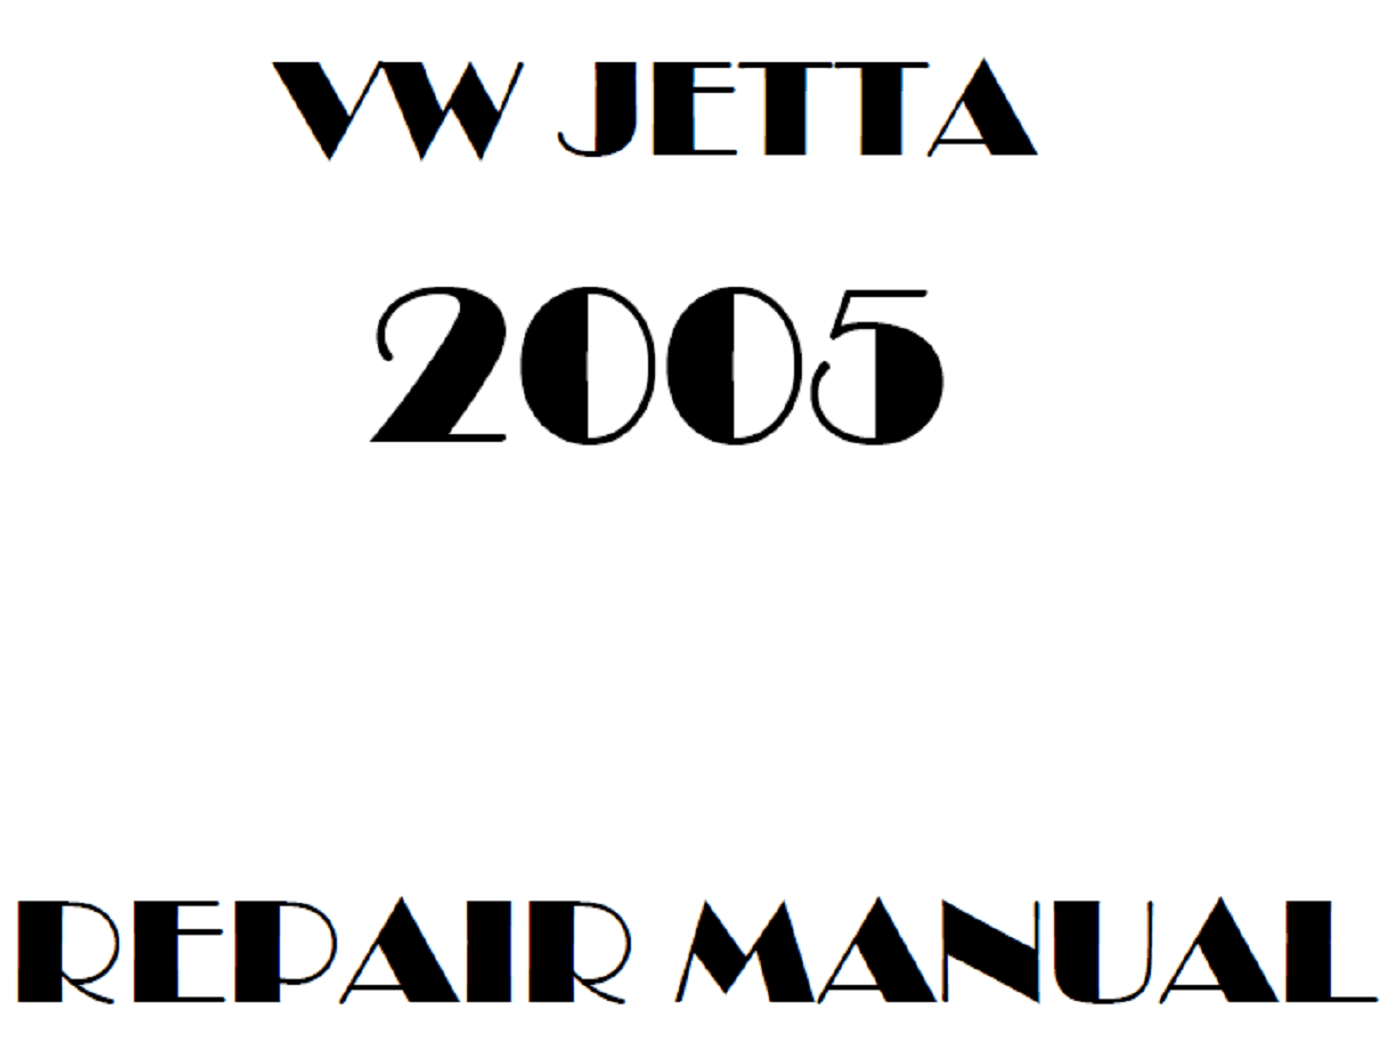 2005 Volkswagen Bora/Jetta repair manual